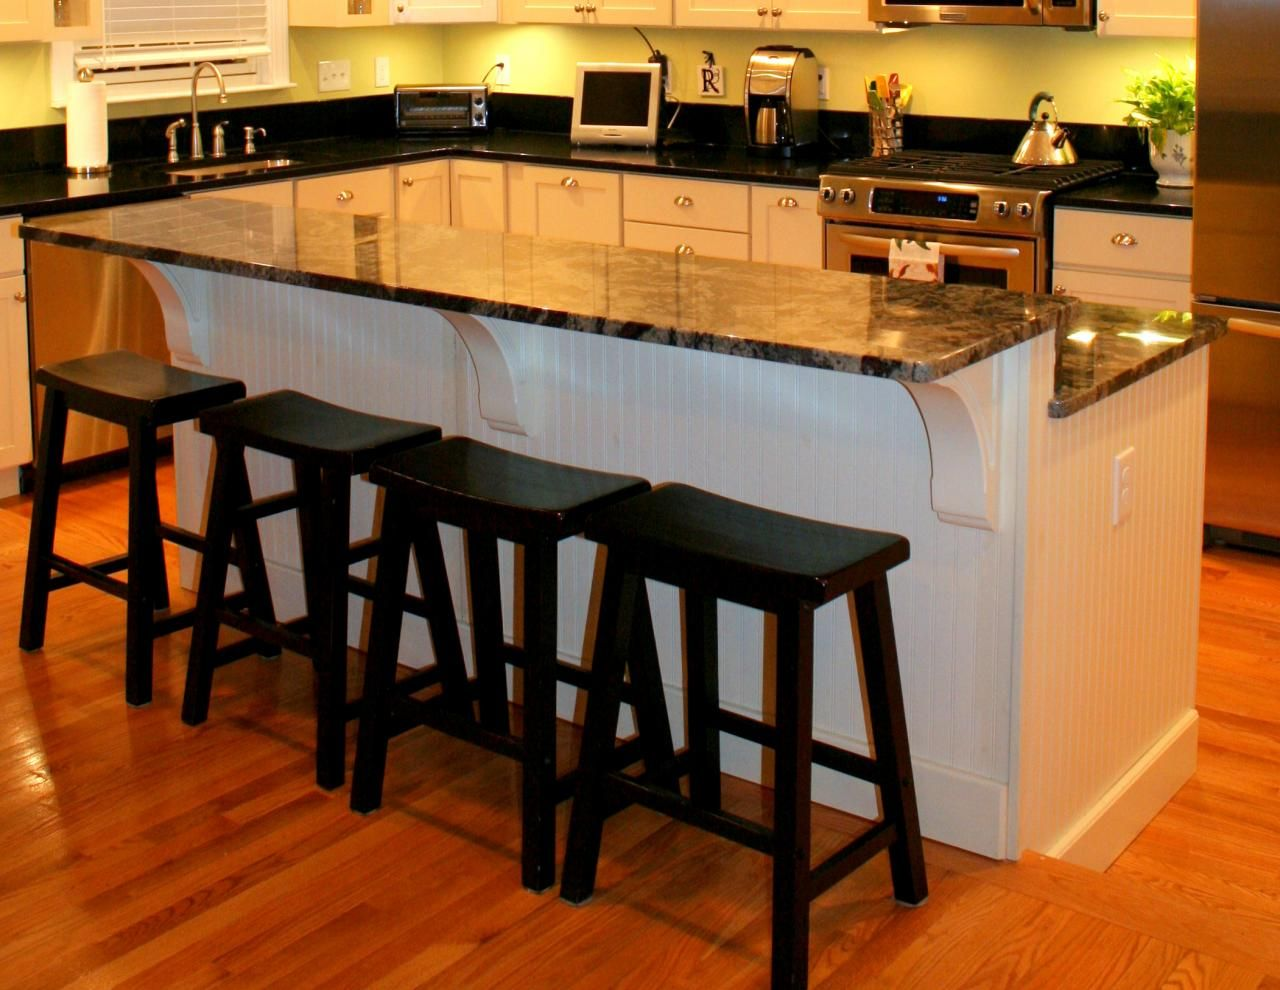 2 tier kitchen island height